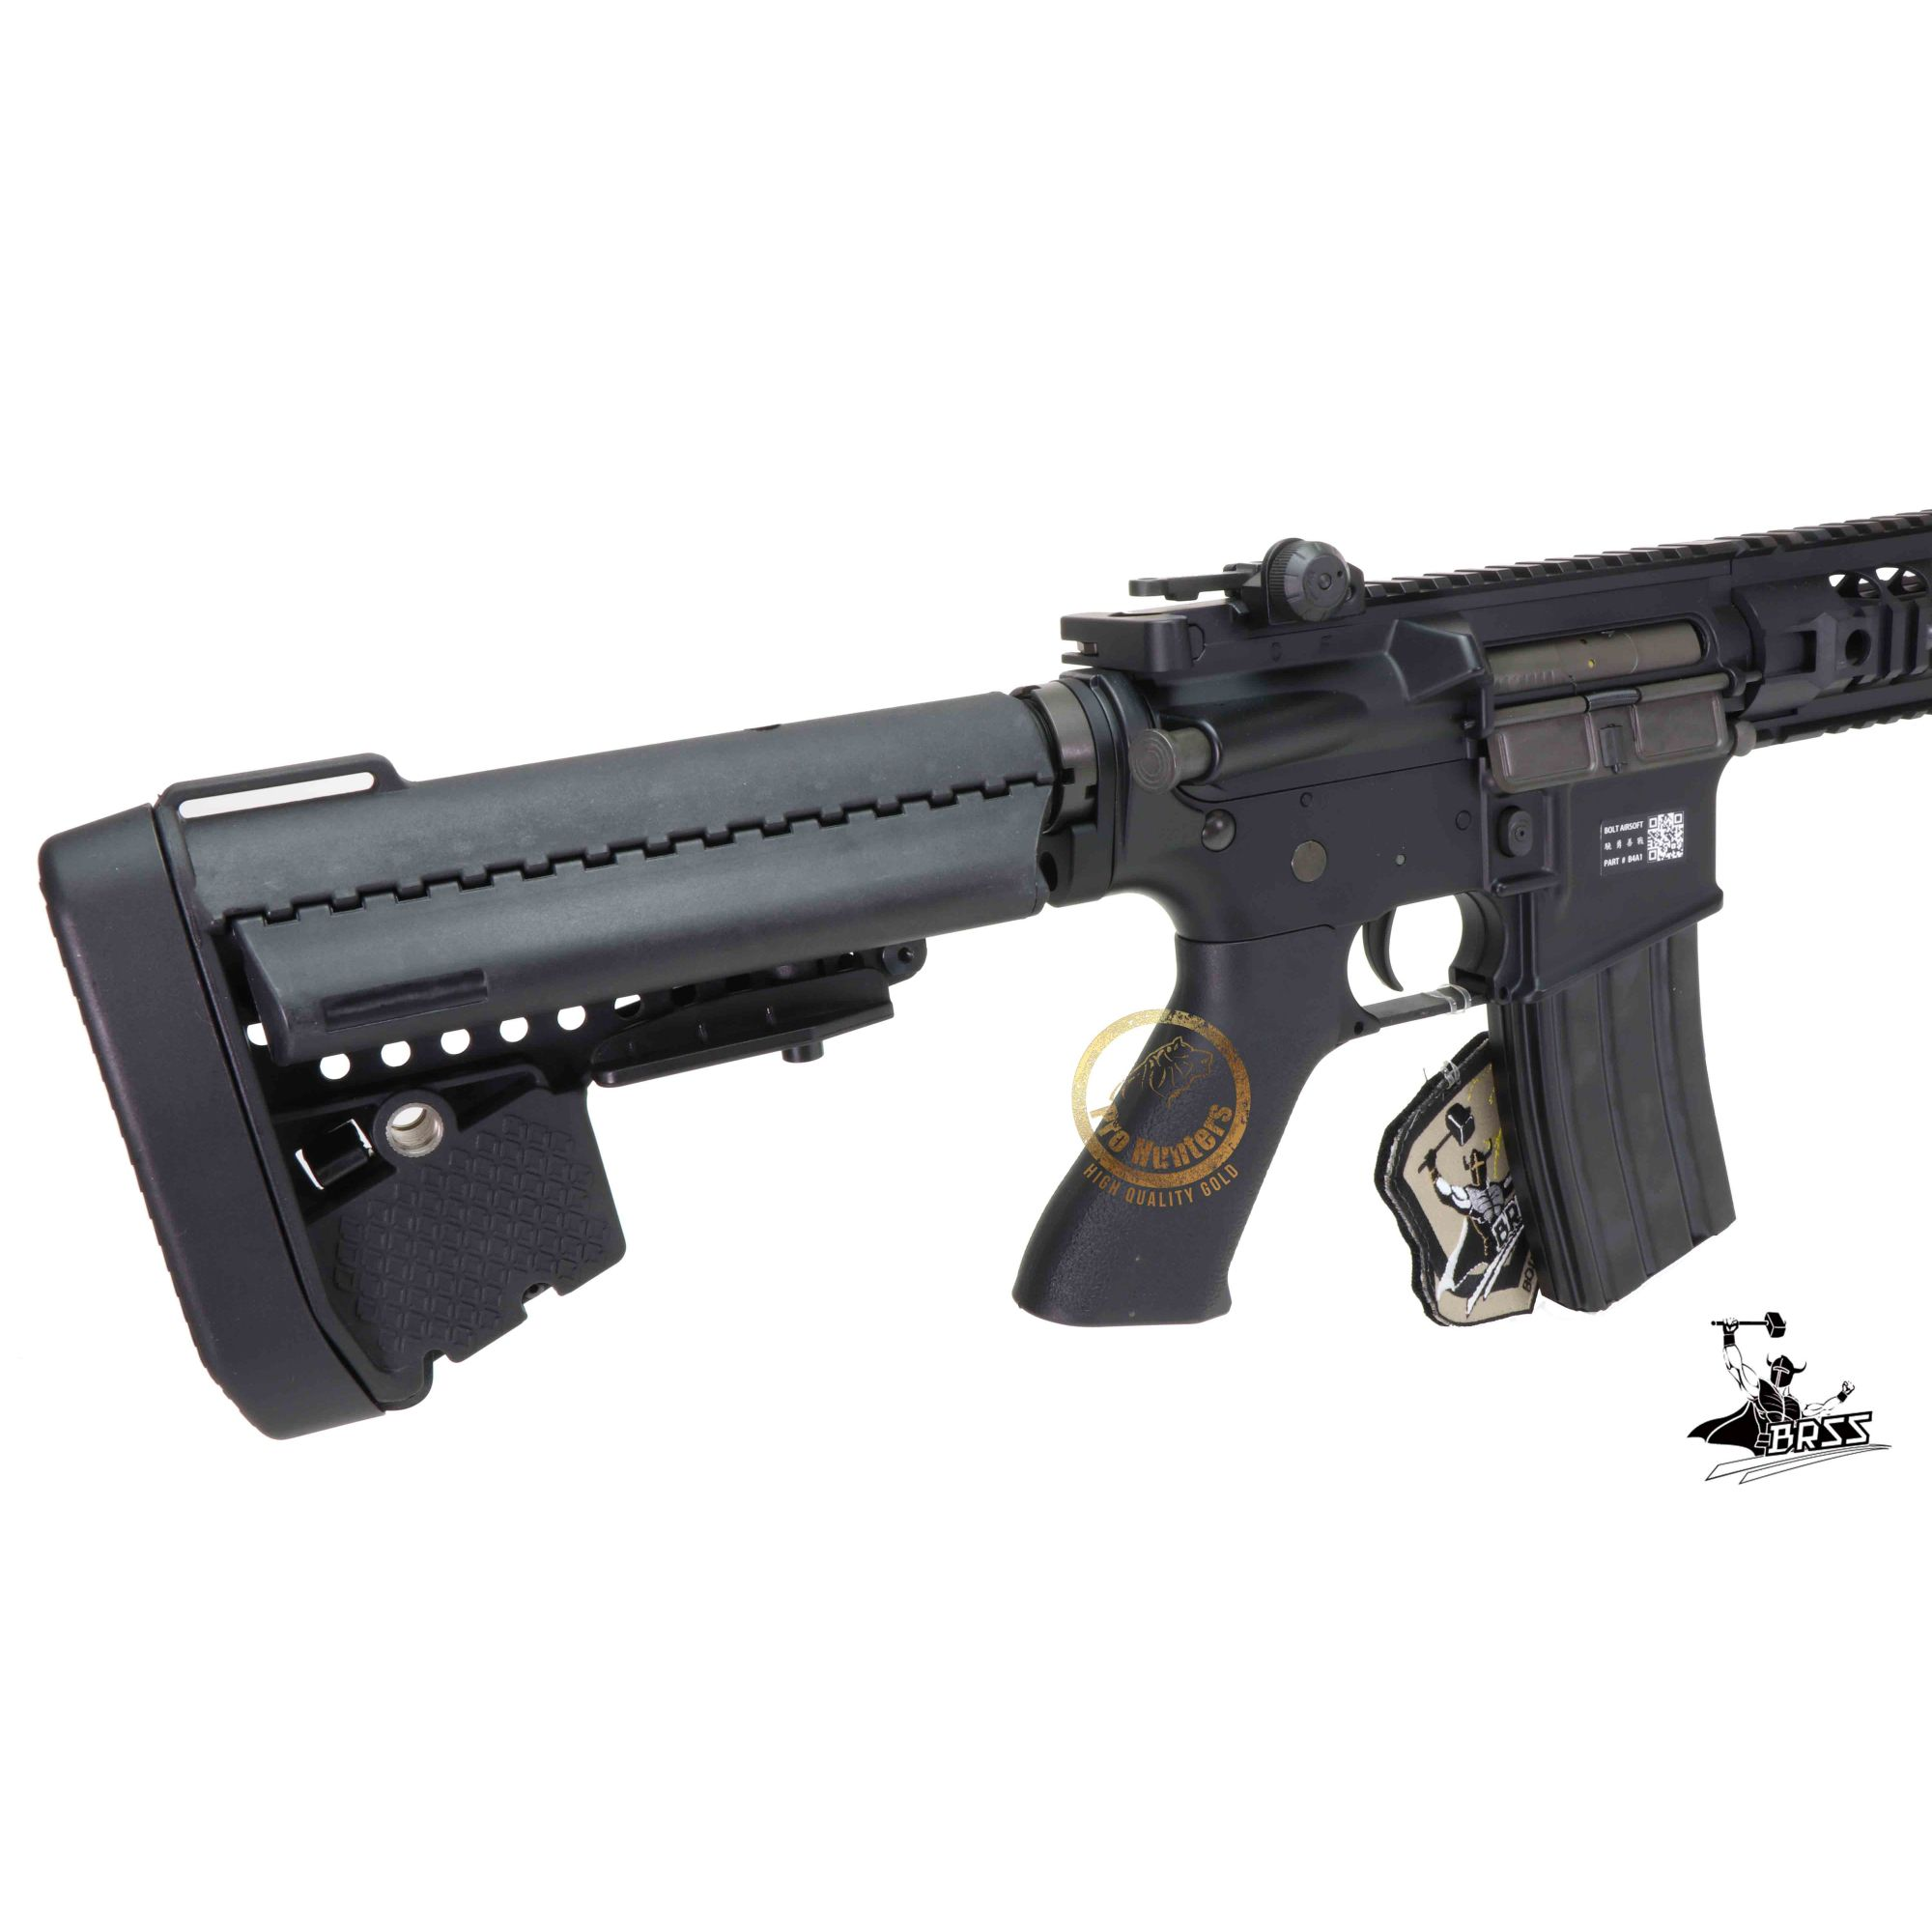 Rifle Airsoft M4 Bolt B4FS URX2  - Black Ris Full Metal - Blowback & Recoil System